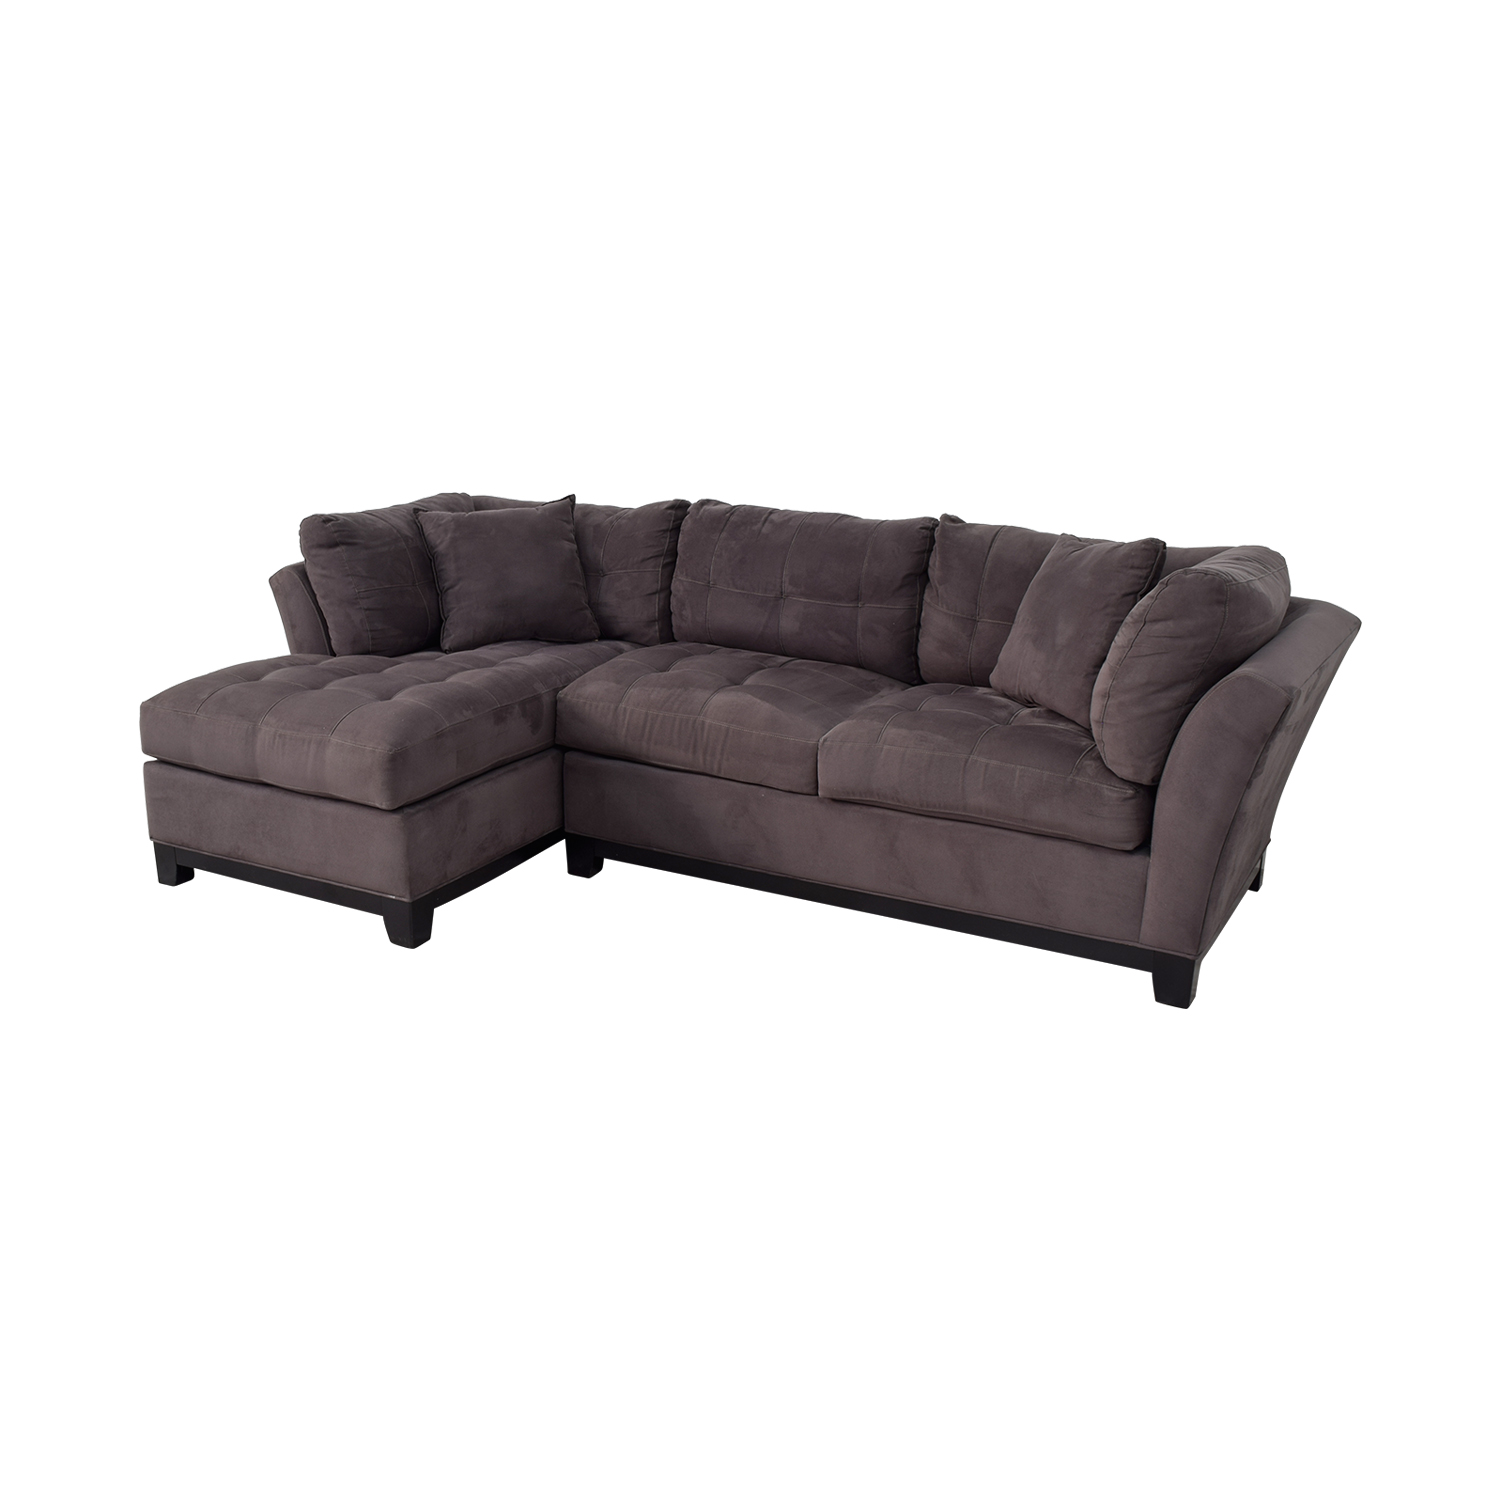 64 Off Raymour Flanigan Cindy Crawford Home Microfiber Sofa